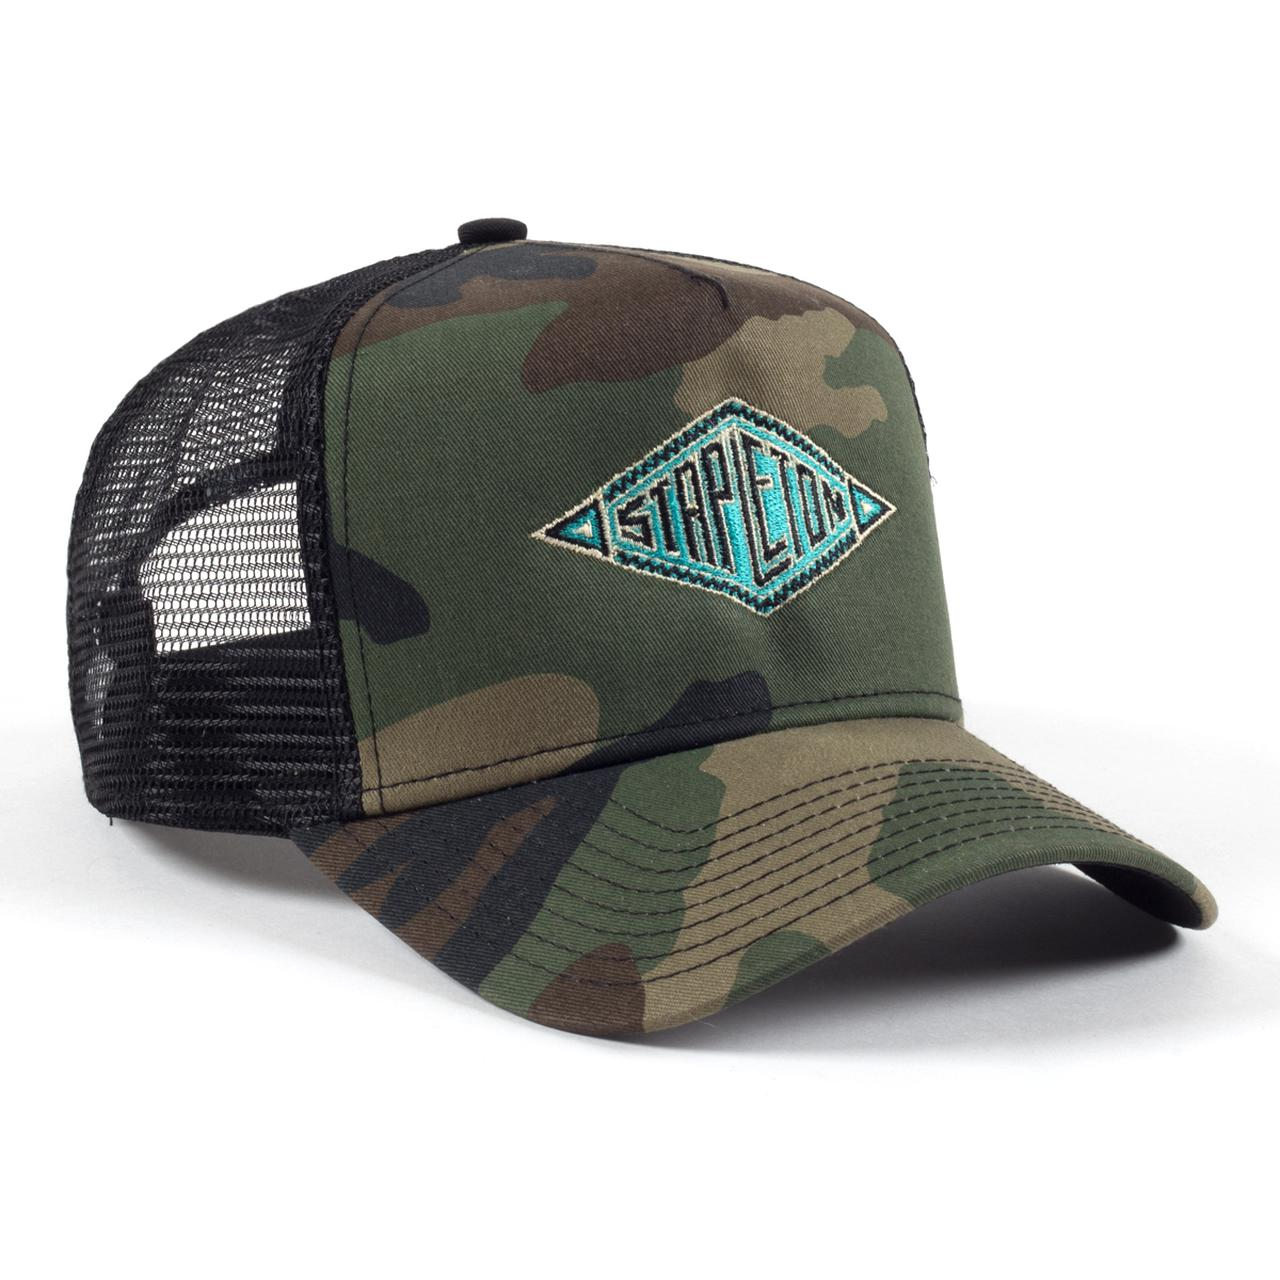 Chris Stapleton Southwestern Embroidered New Era Camo Trucker Hat d34538849c2